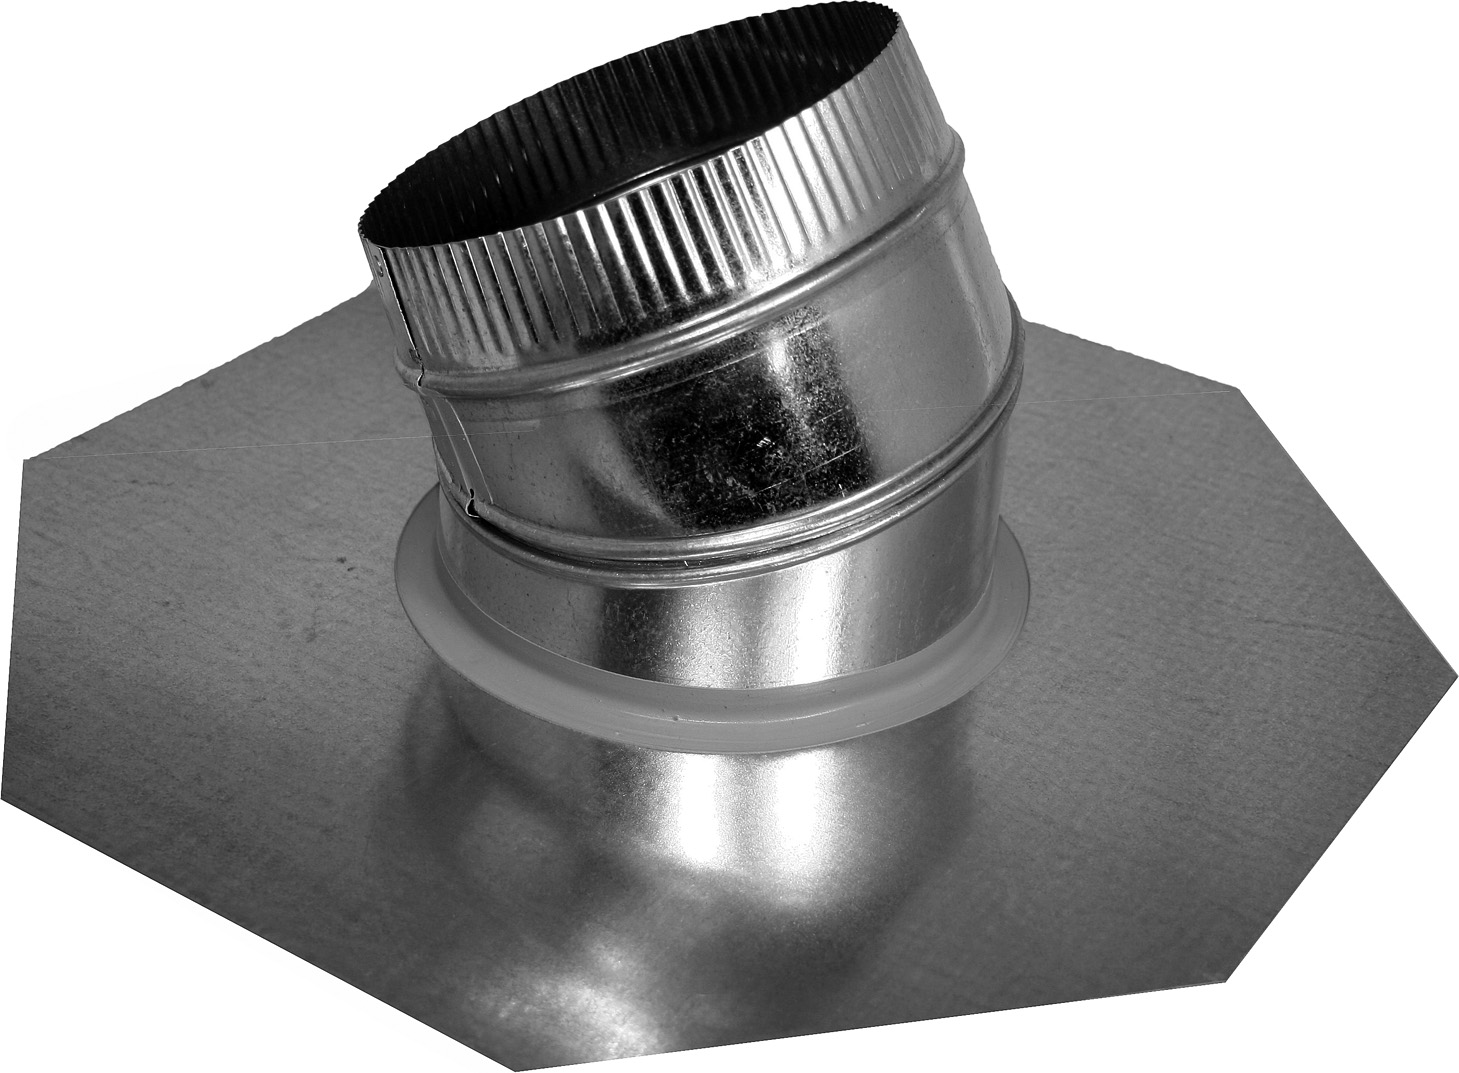 Turbine Vents For Commercial Venting Amp Residential Venting